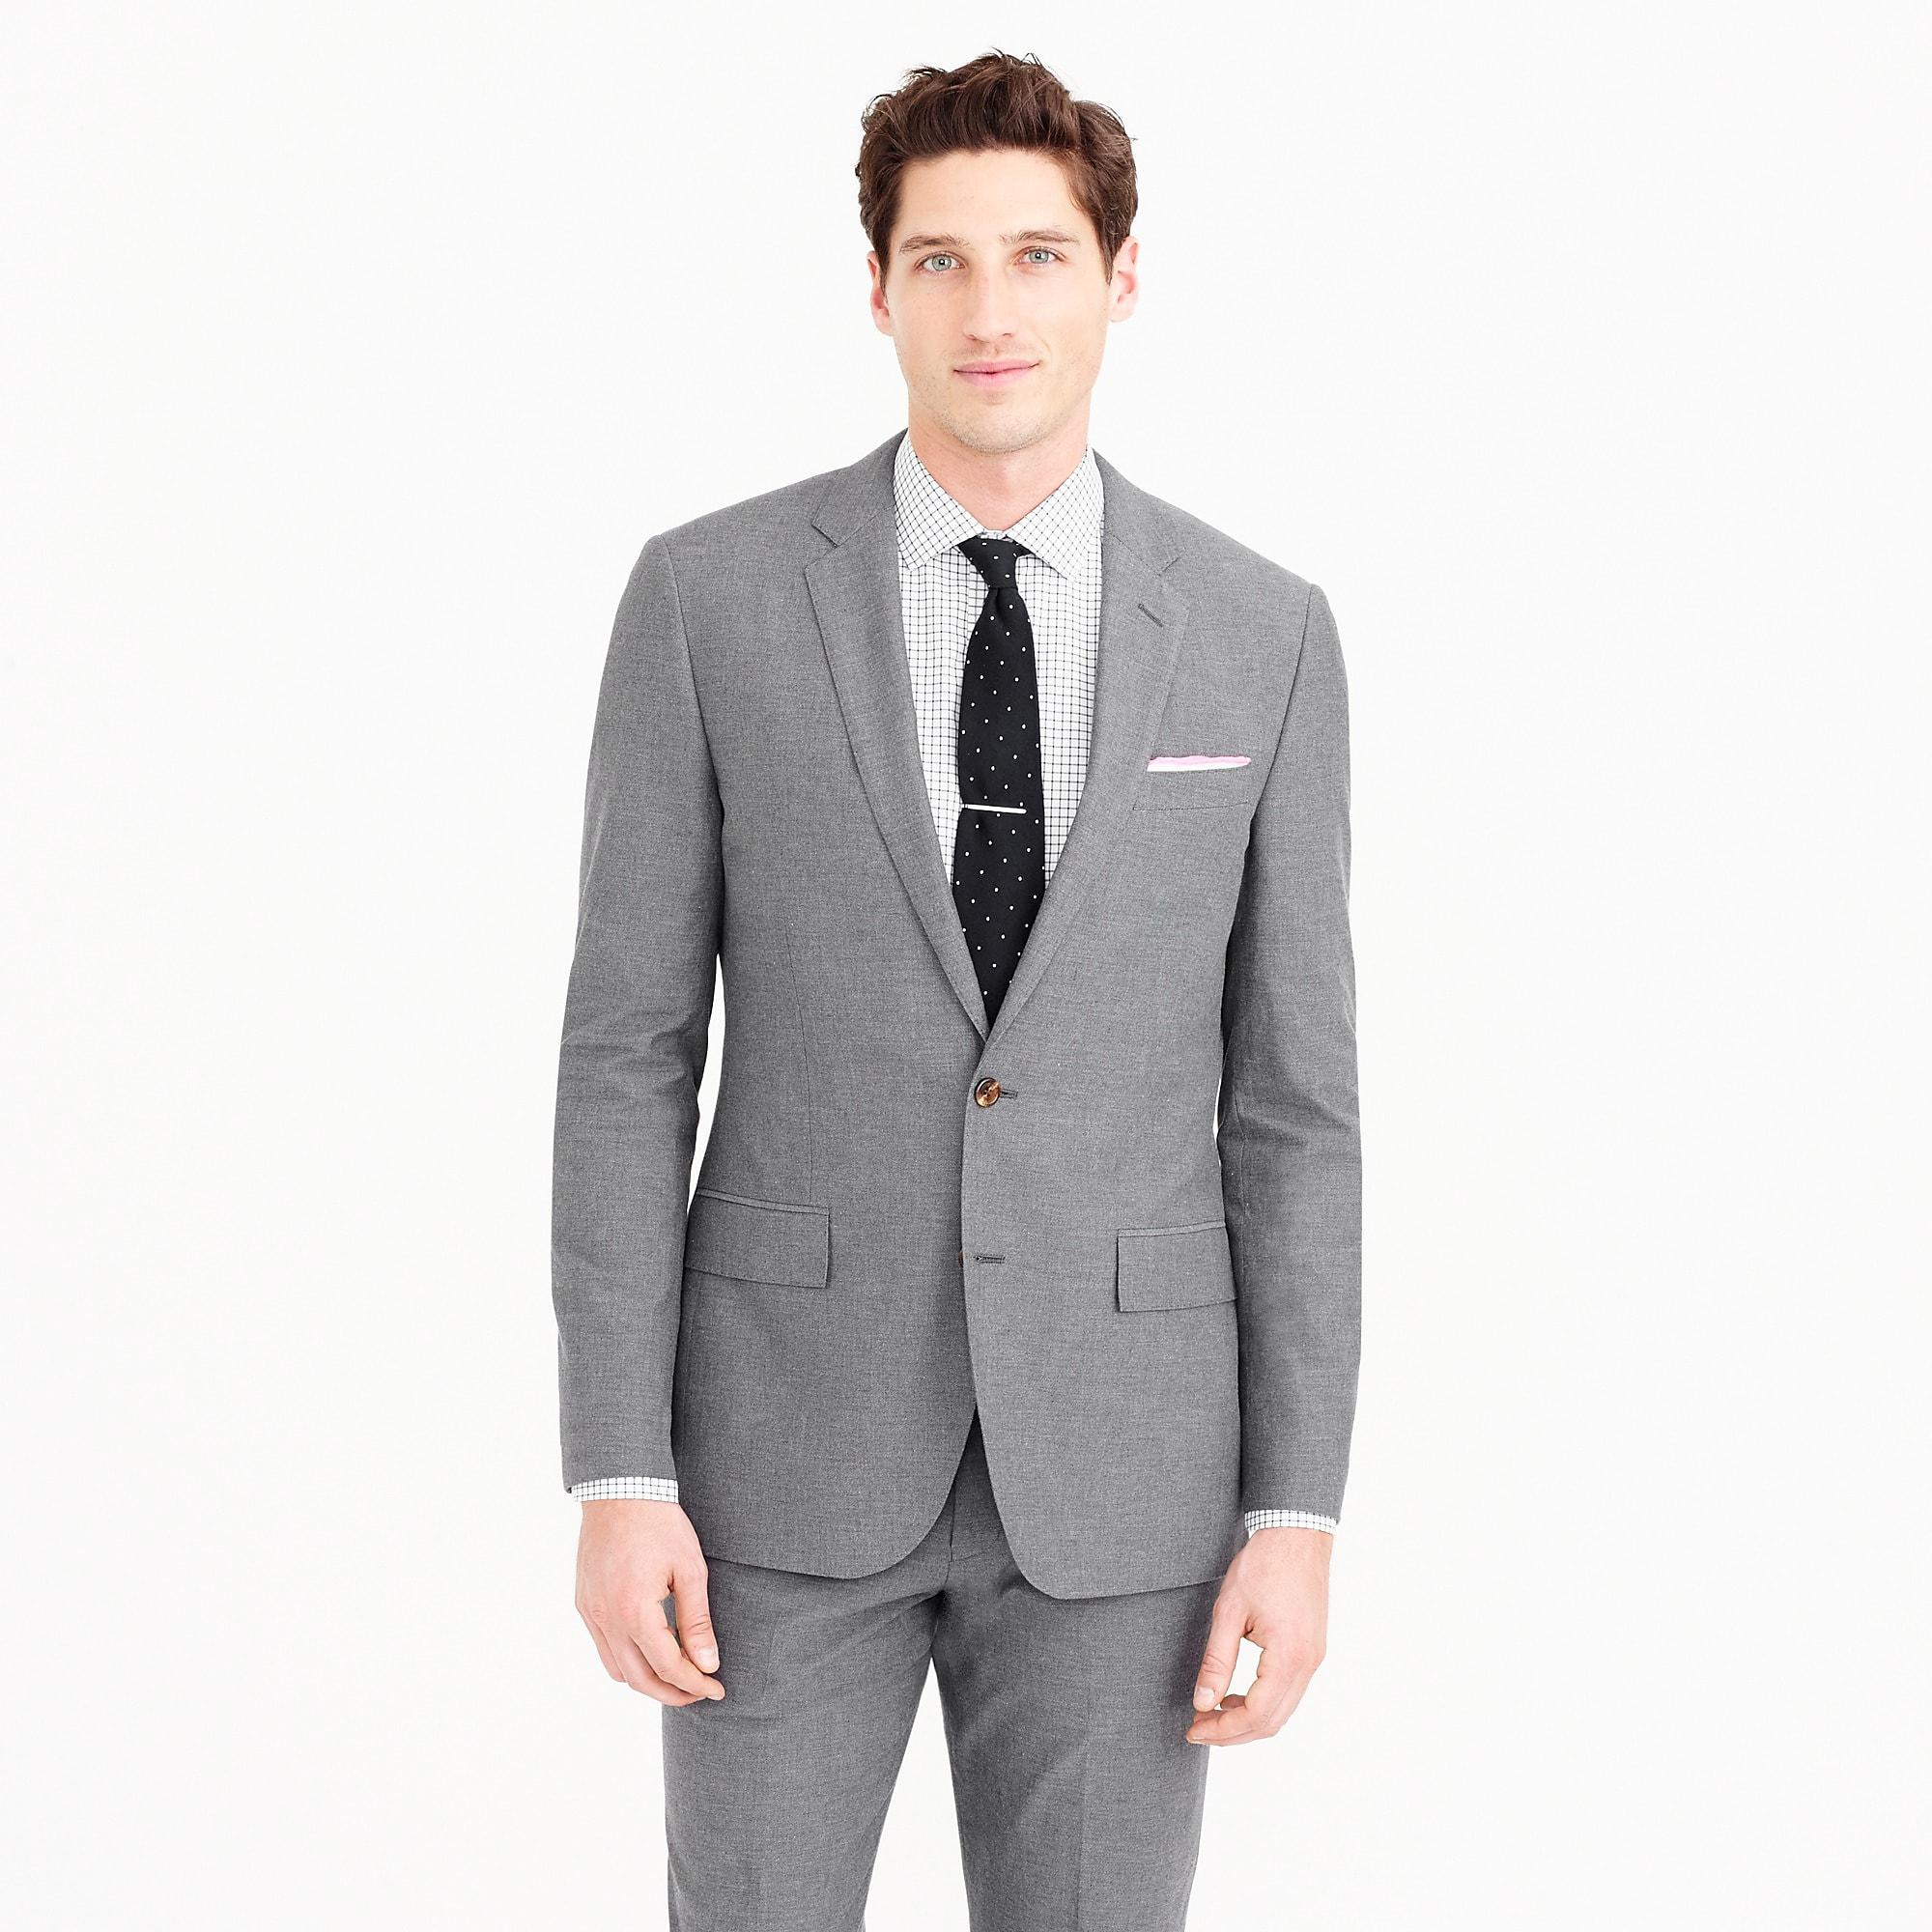 1ddcaed6deb1 J.Crew Ludlow Suit Jacket In Italian Cotton Oxford Cloth in Gray for ...